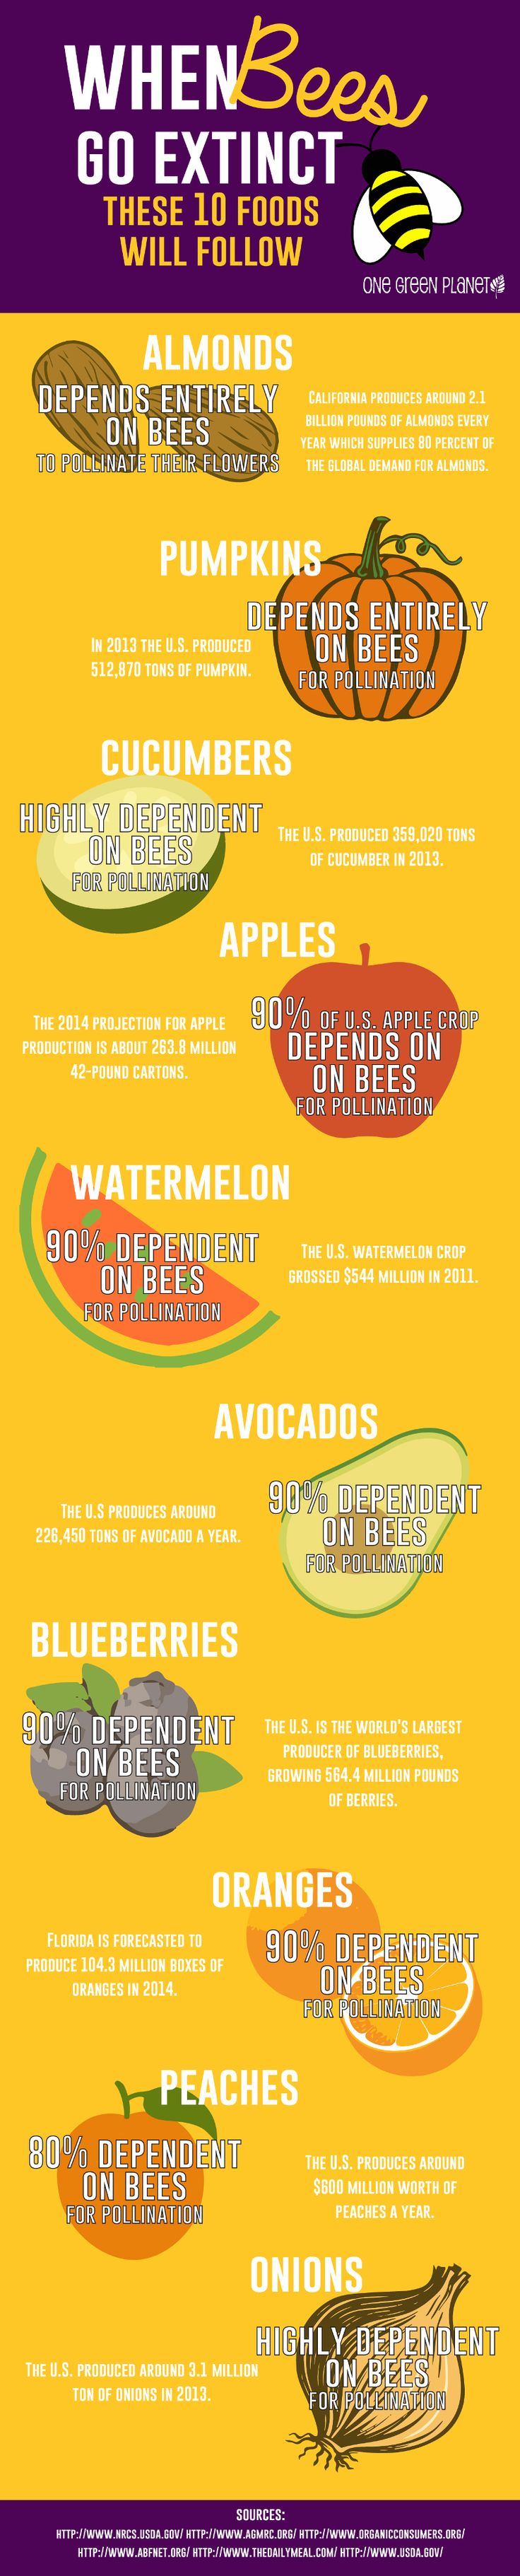 When Bees Go Extinct, These 10 Foods Will Follow | One Green Planet | This is bad, very bad. None of us want to lose even one of these 10 foods; however, you can bet they aren't the only foods we'll lose. Wake up people. Stop listening to idiots that are speaking for corporate greed. Educate your damn selves and start working against corporate greed and for people! Please read and share this outstanding article.